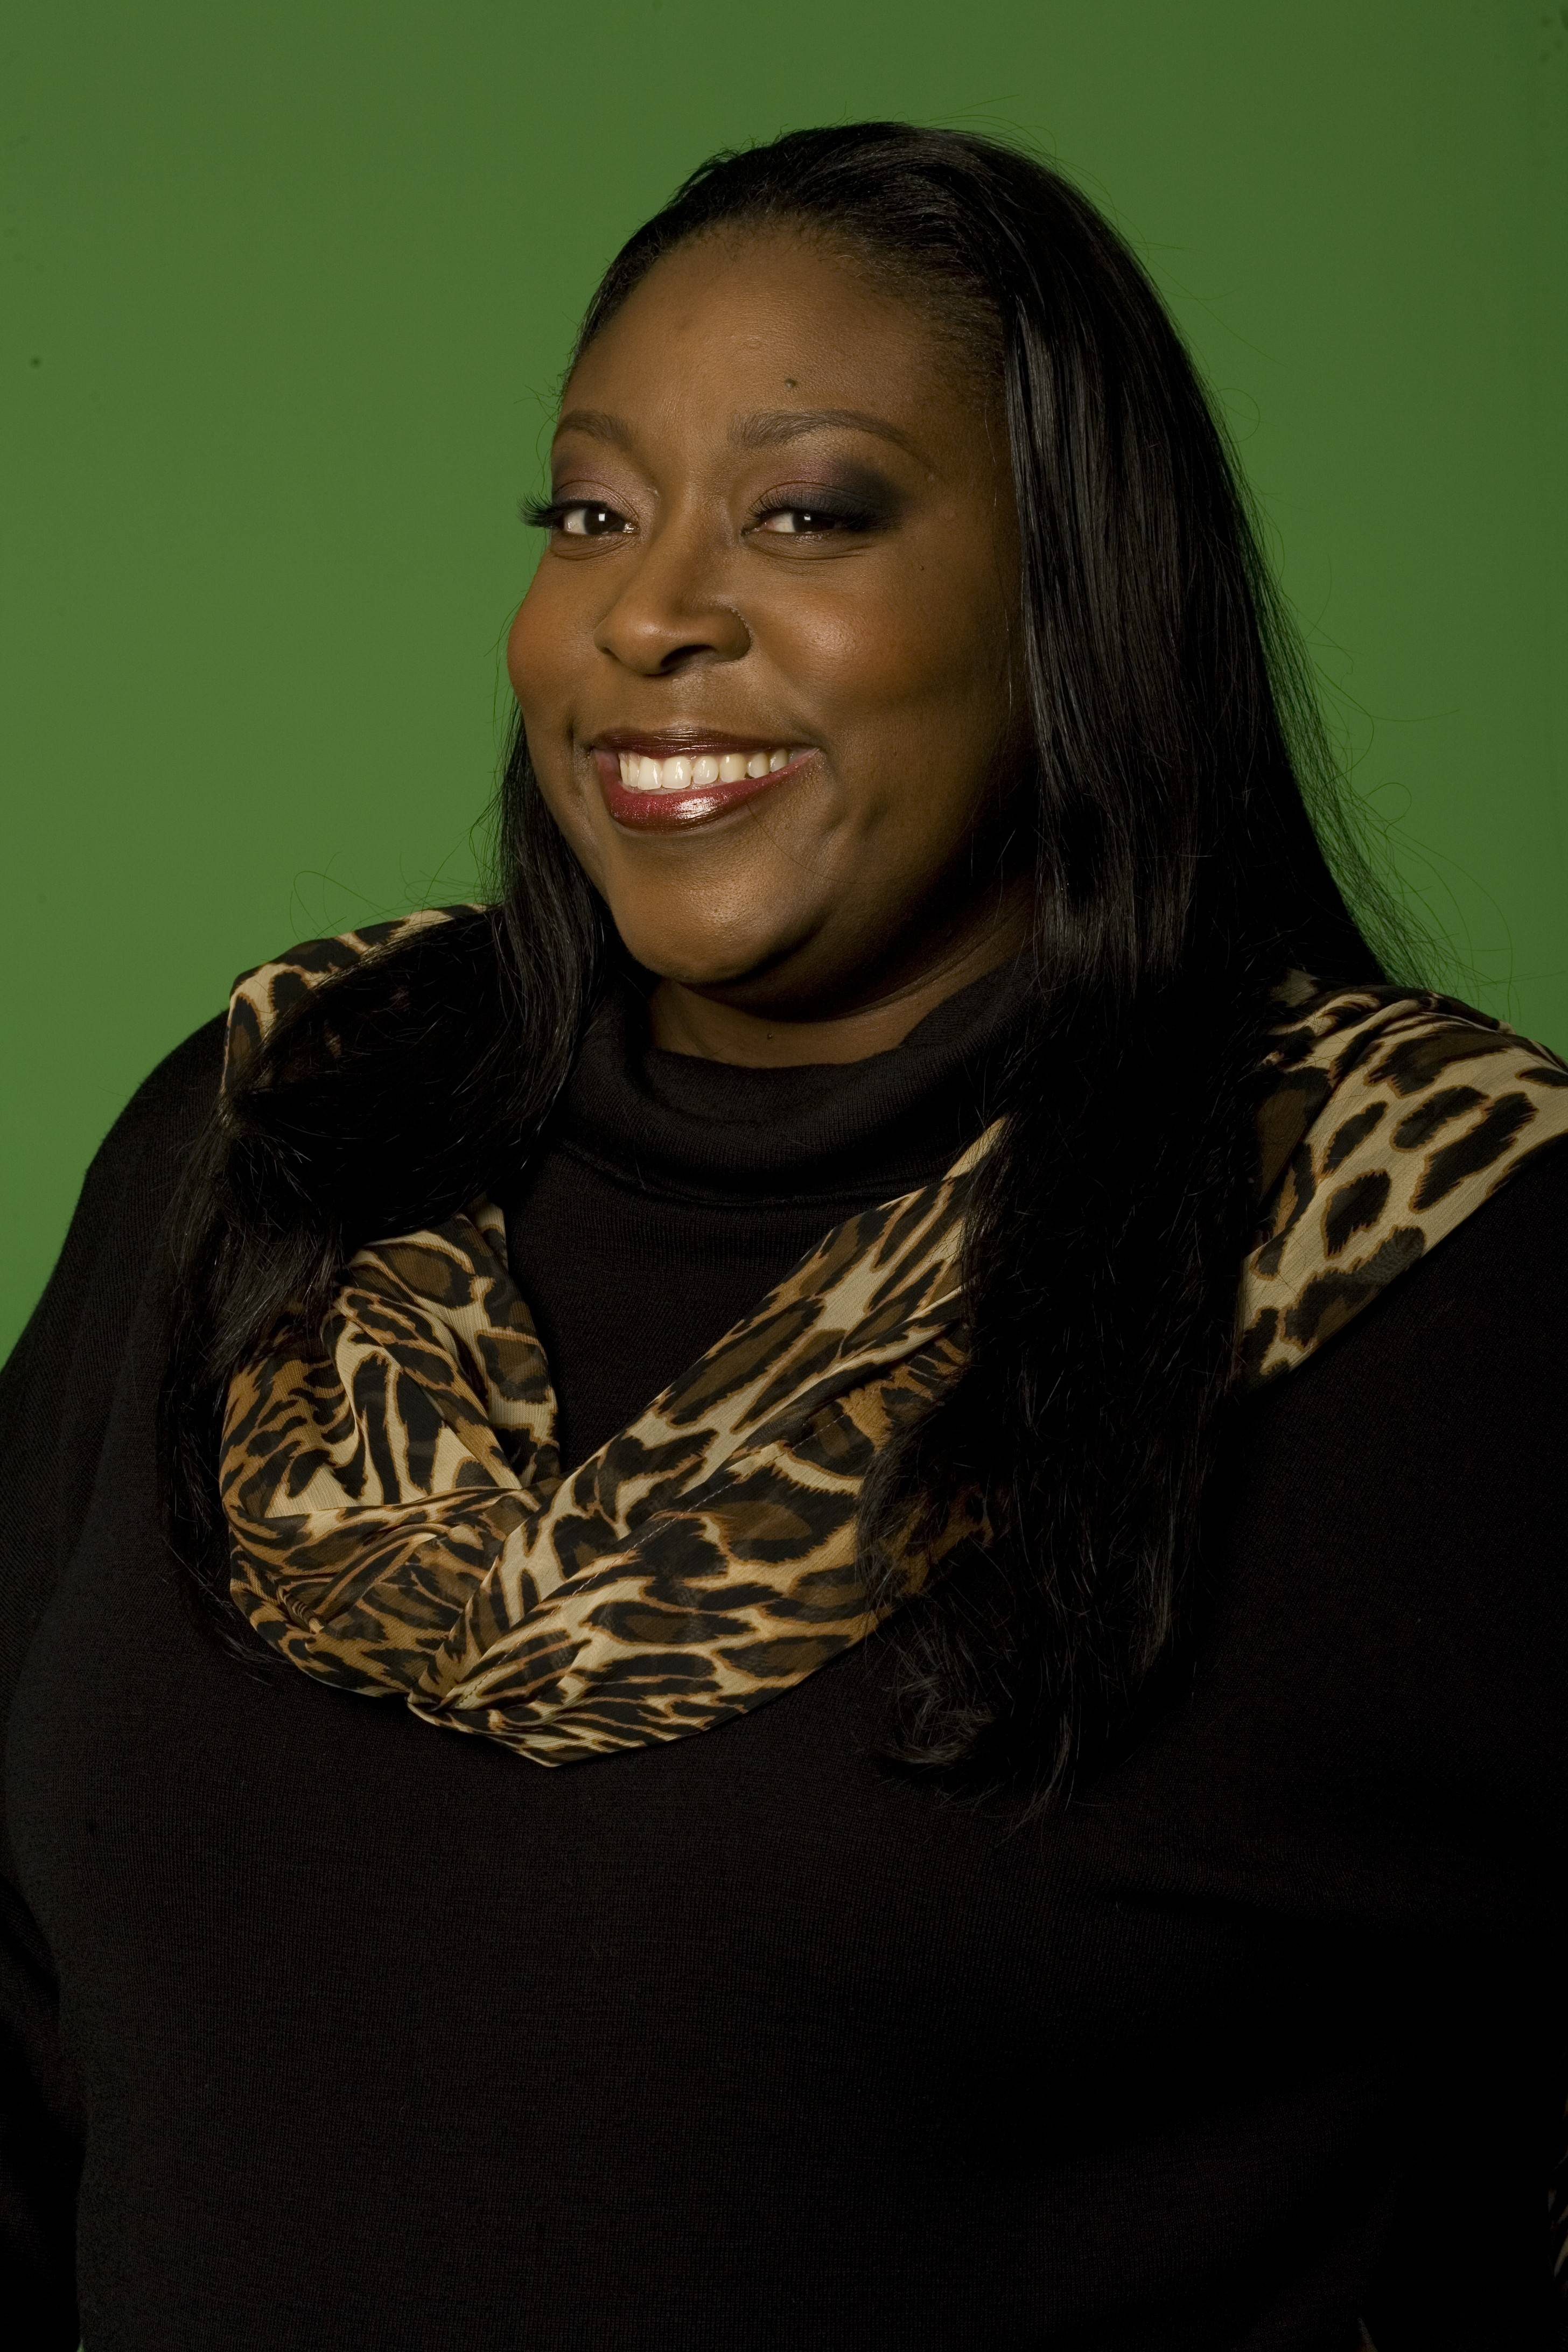 Comedian Loni Love returns to perform at the Improv Comedy Showcase in Schaumburg.